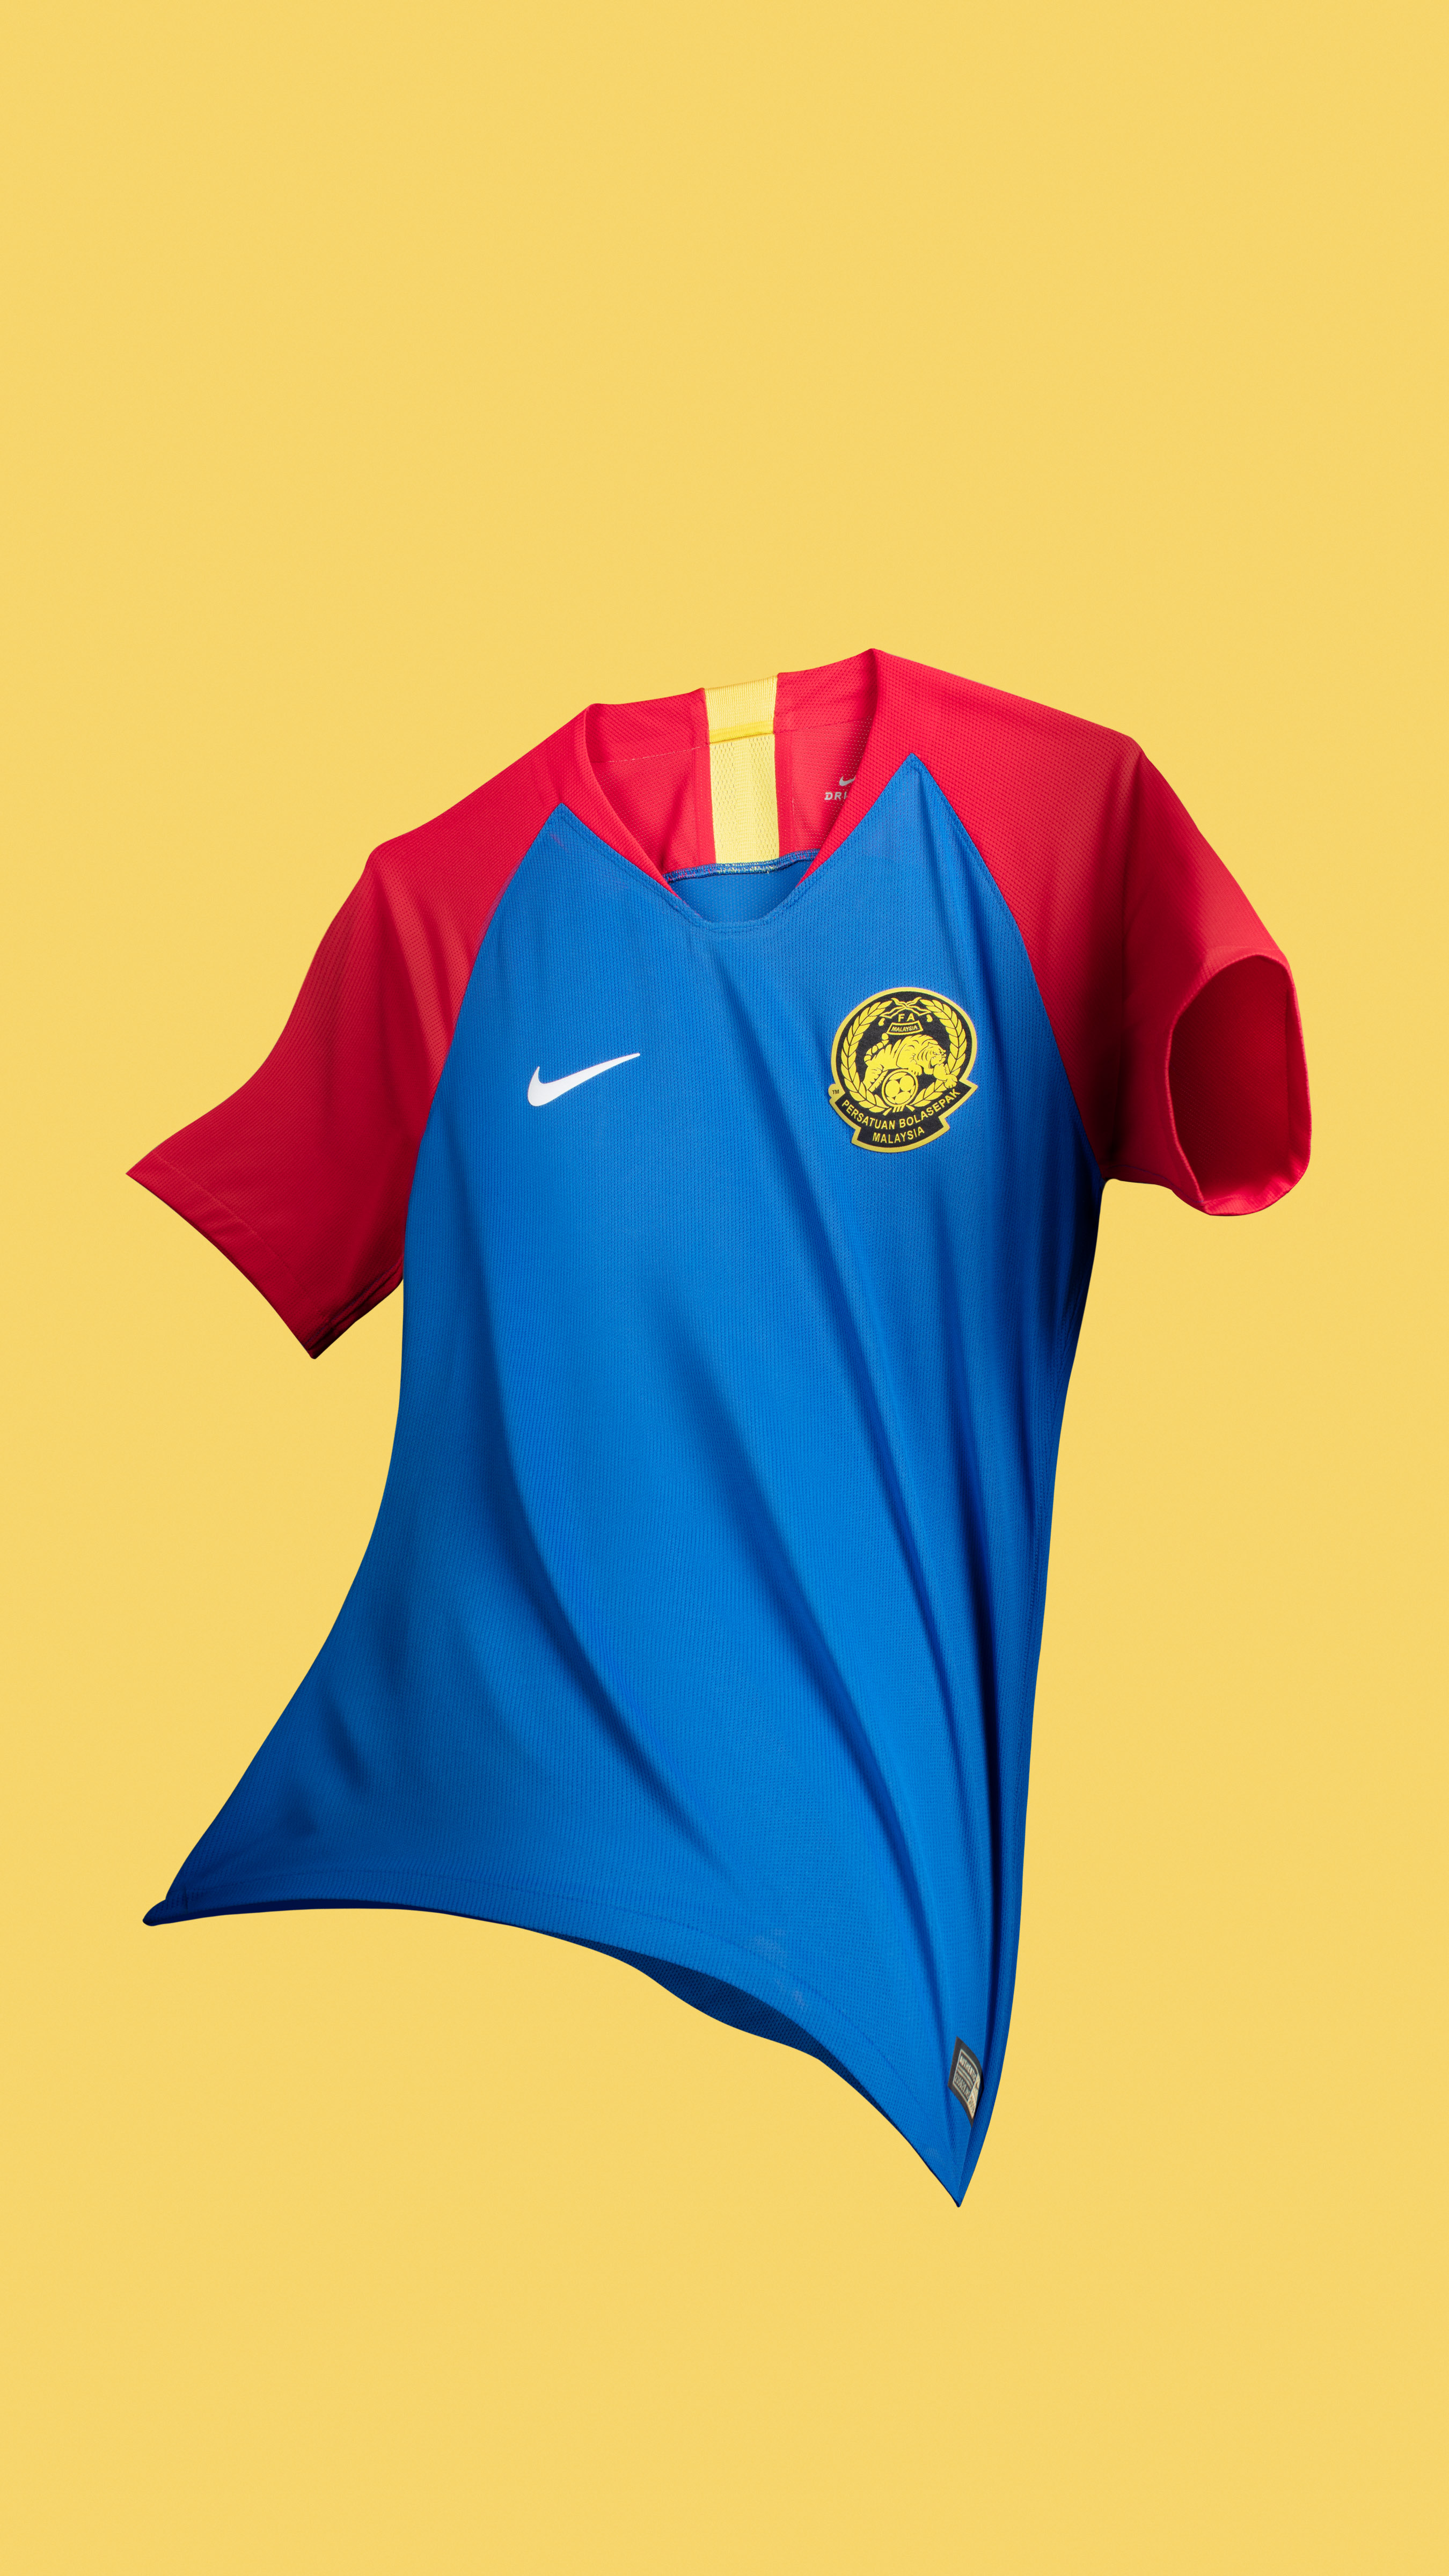 868cb42df The New Malaysian National Football Team Jerseys Are Here, And They ...